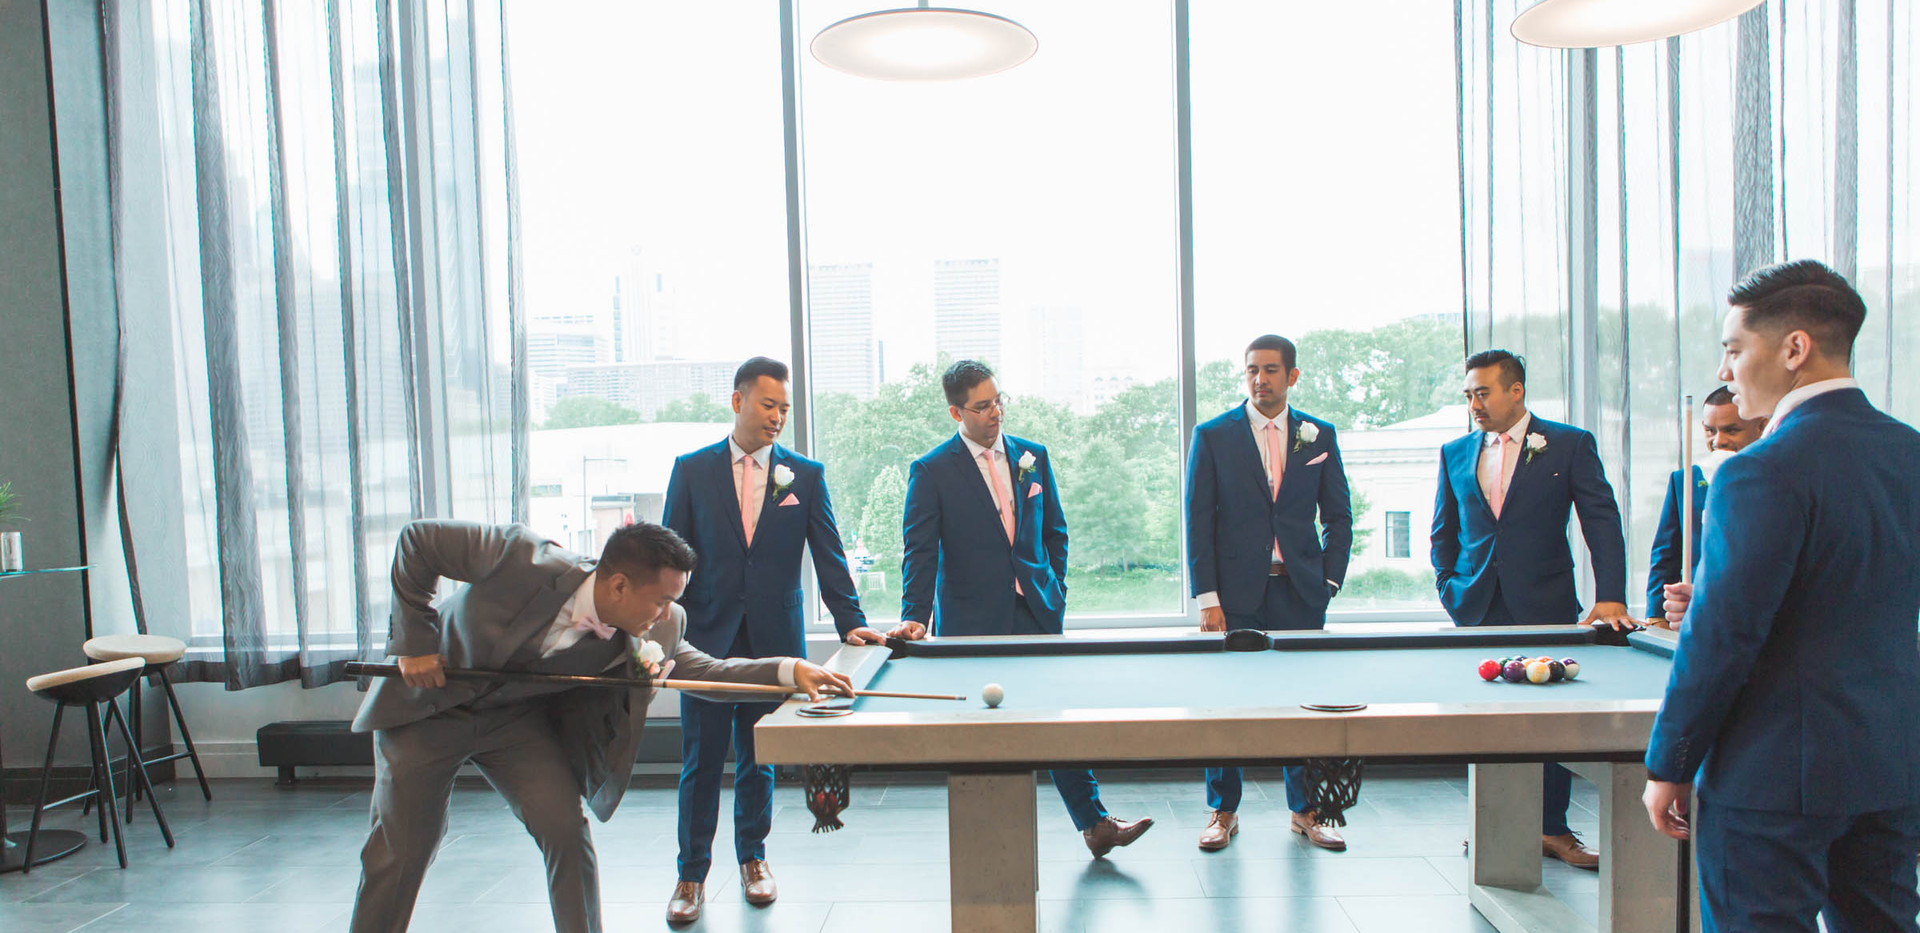 groomsmen party